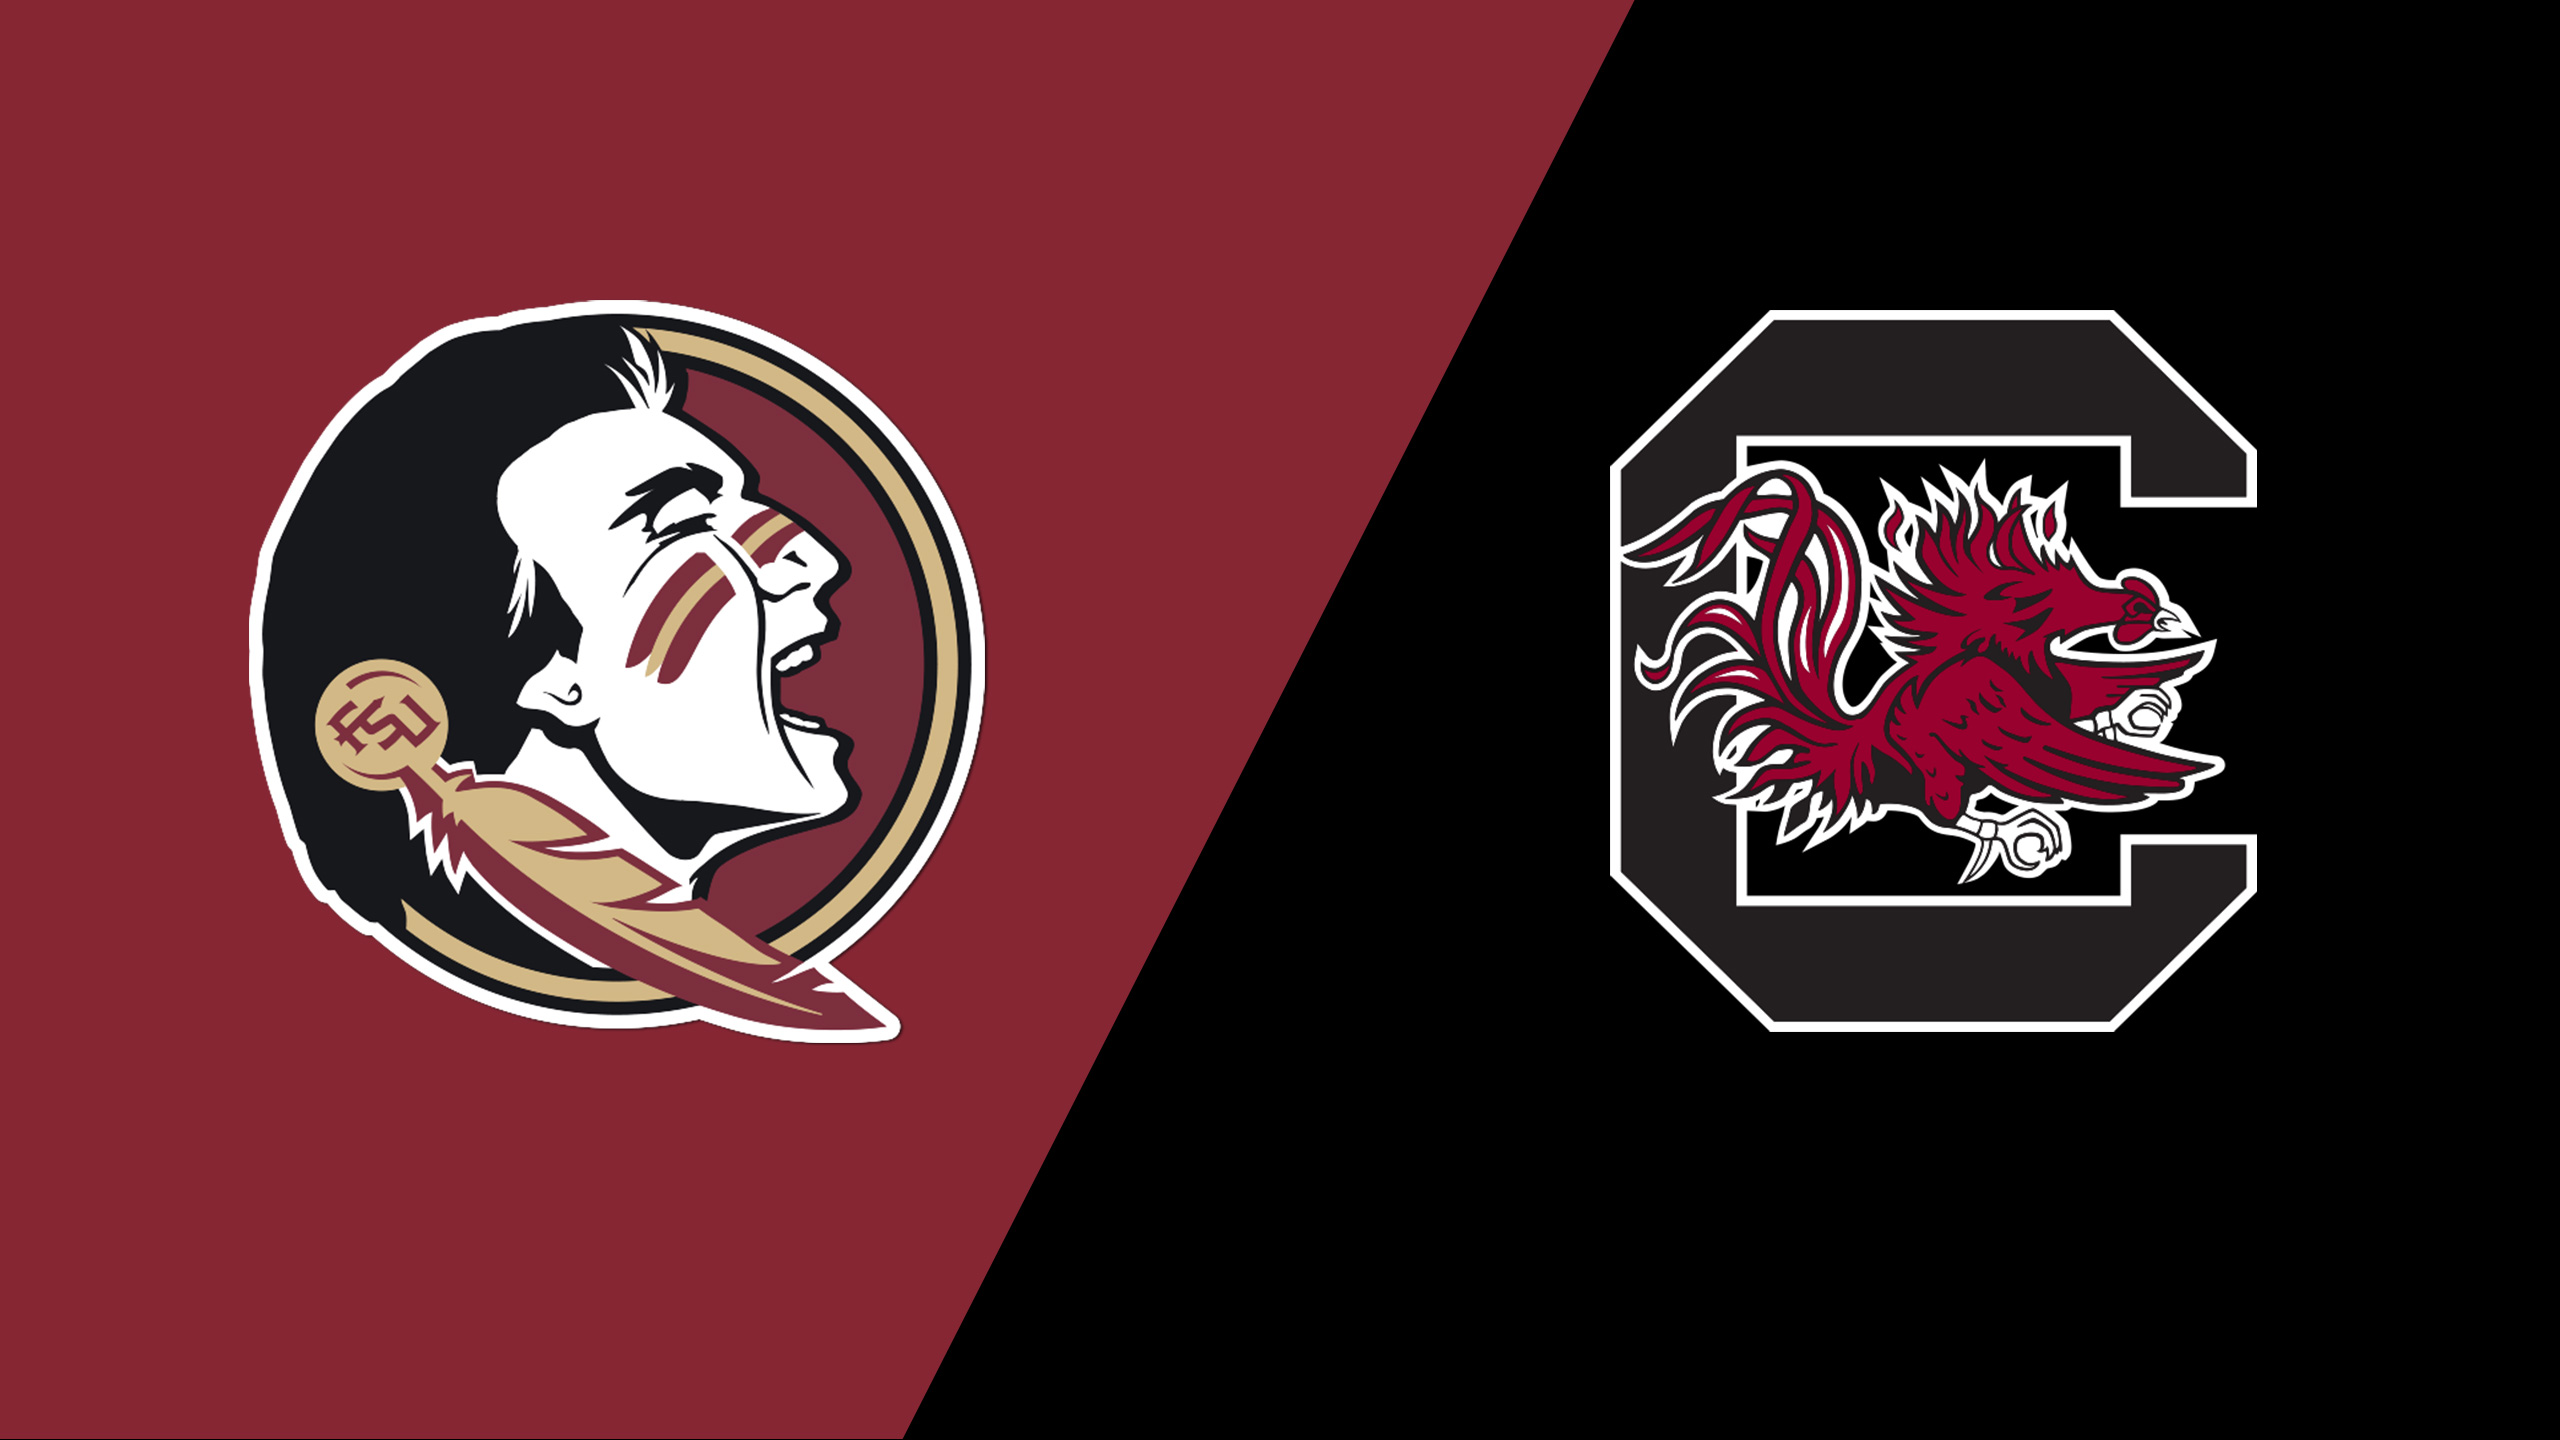 #5 Florida State vs. #4 South Carolina (Second Round) (re-air)